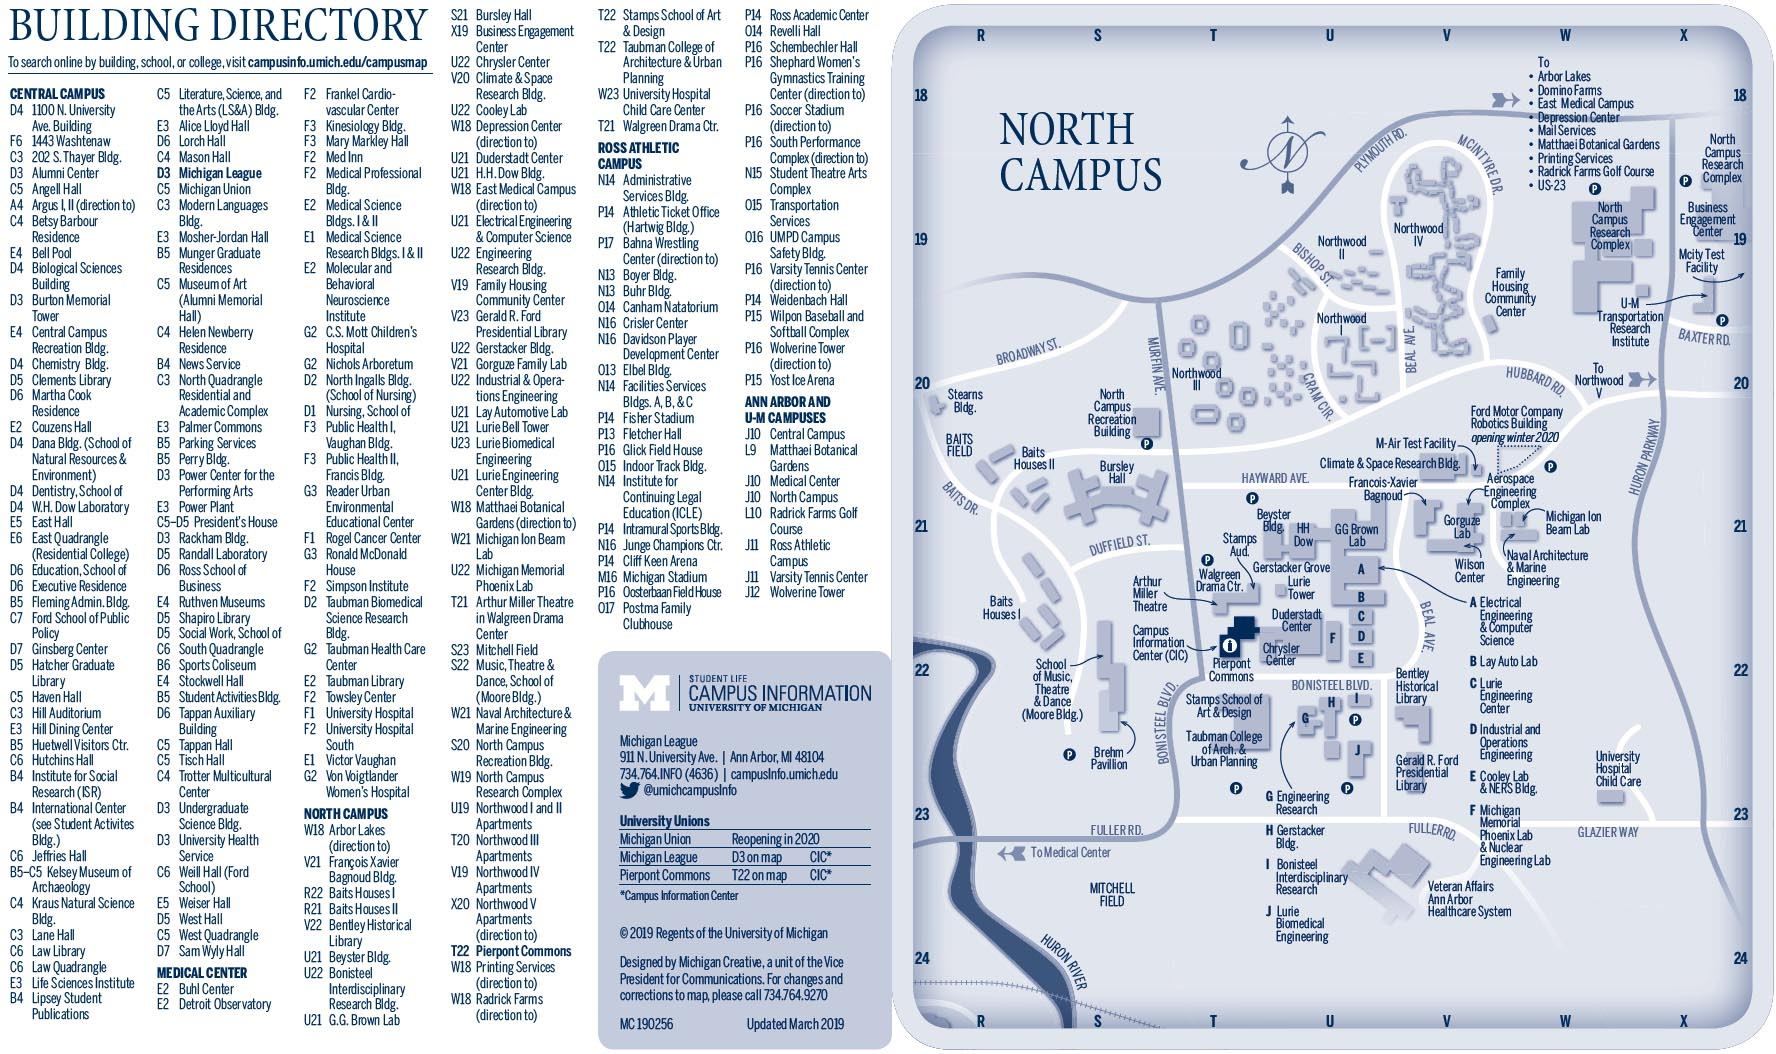 University of Michigan building directory and North Campus map